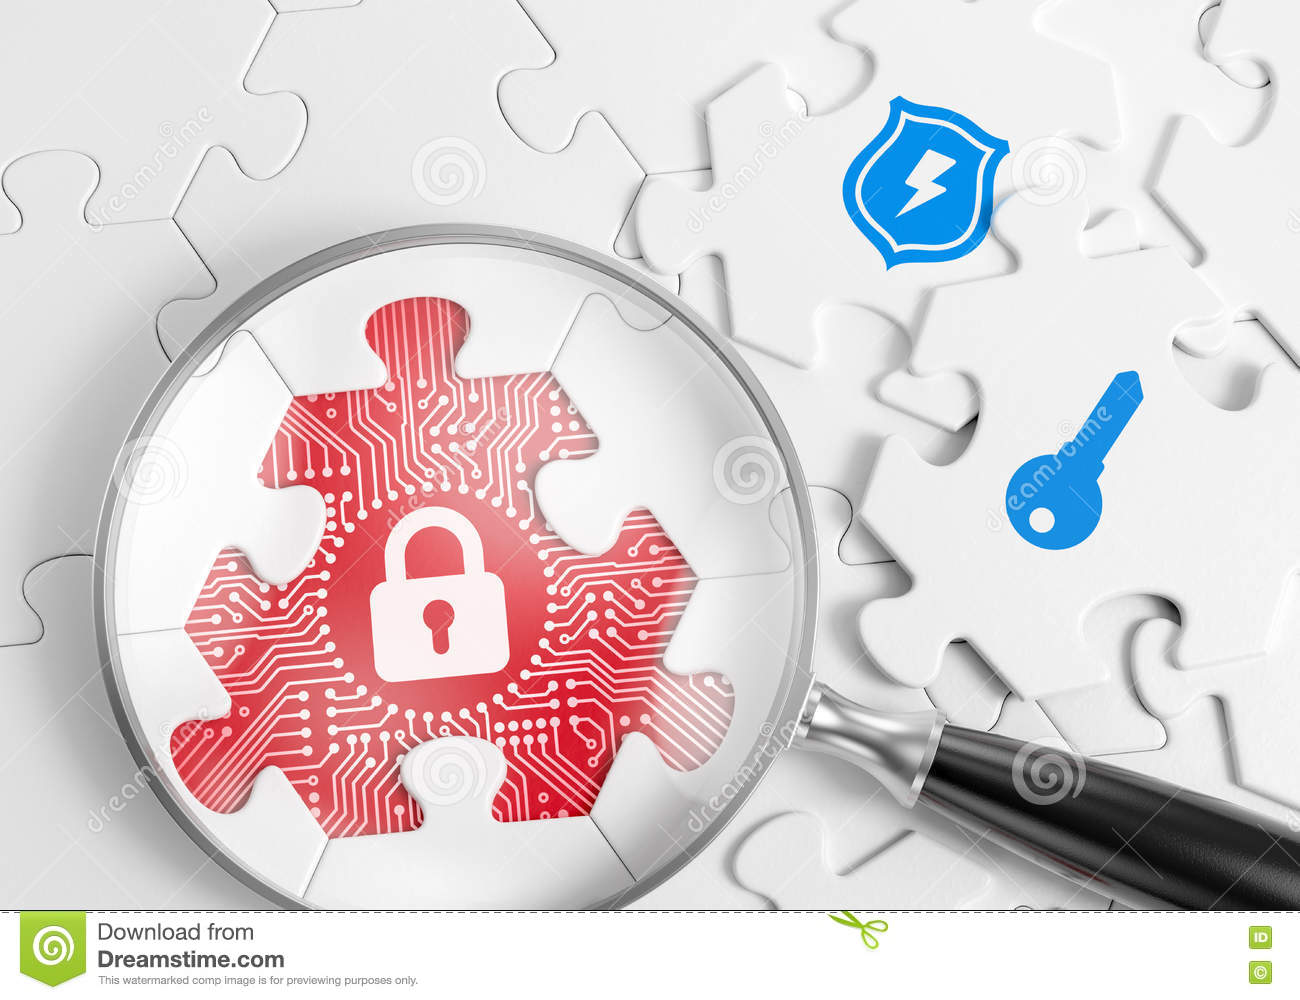 Security Vulnerability Search Stock Illustration.